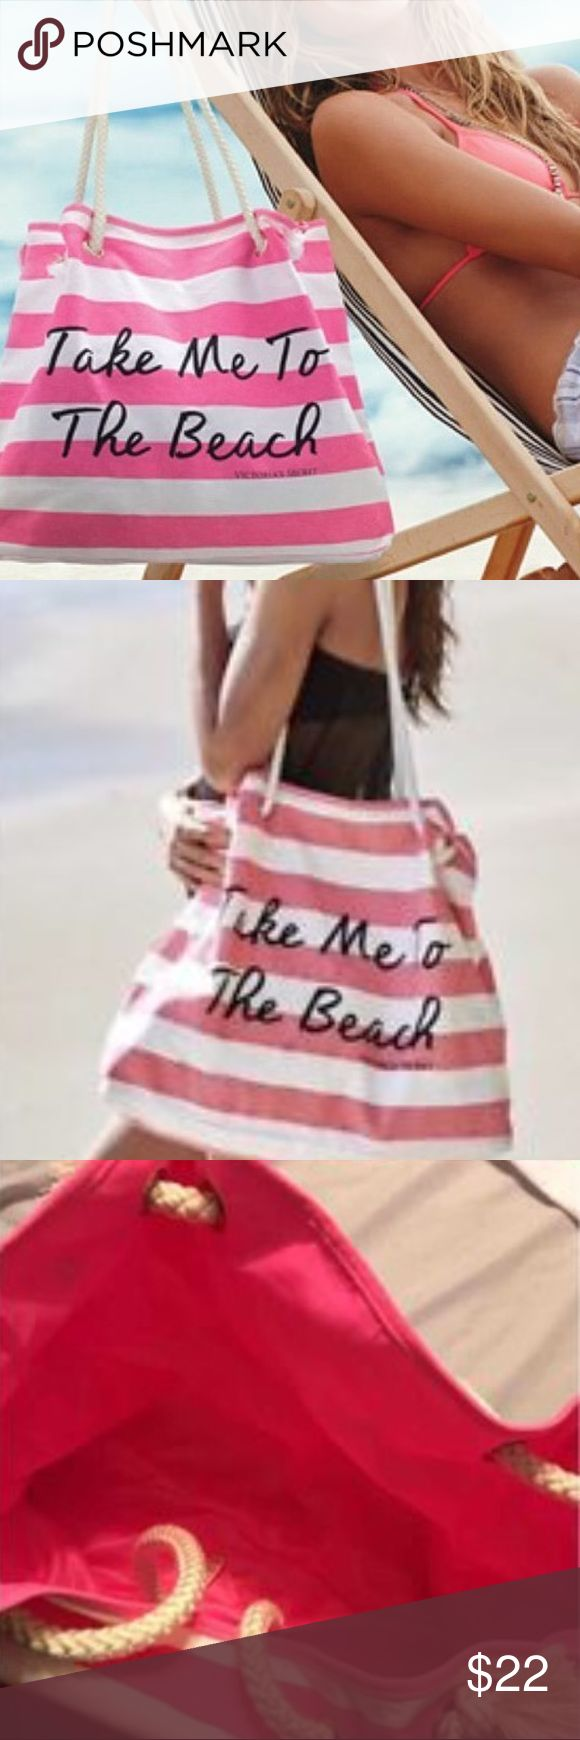 """VS Large Beach Tote Bag. """"Take me to the beach."""" New in unopened packaging. Large Victoria's Secret beach tote bag. Pink and off white stripped pattern. """"Take me to the beach"""" quote in black with cute rope handle. Very spacious tote. Perfect for a weekend getaway, beach day, storage, or groceries. Victoria's Secret Bags Totes"""